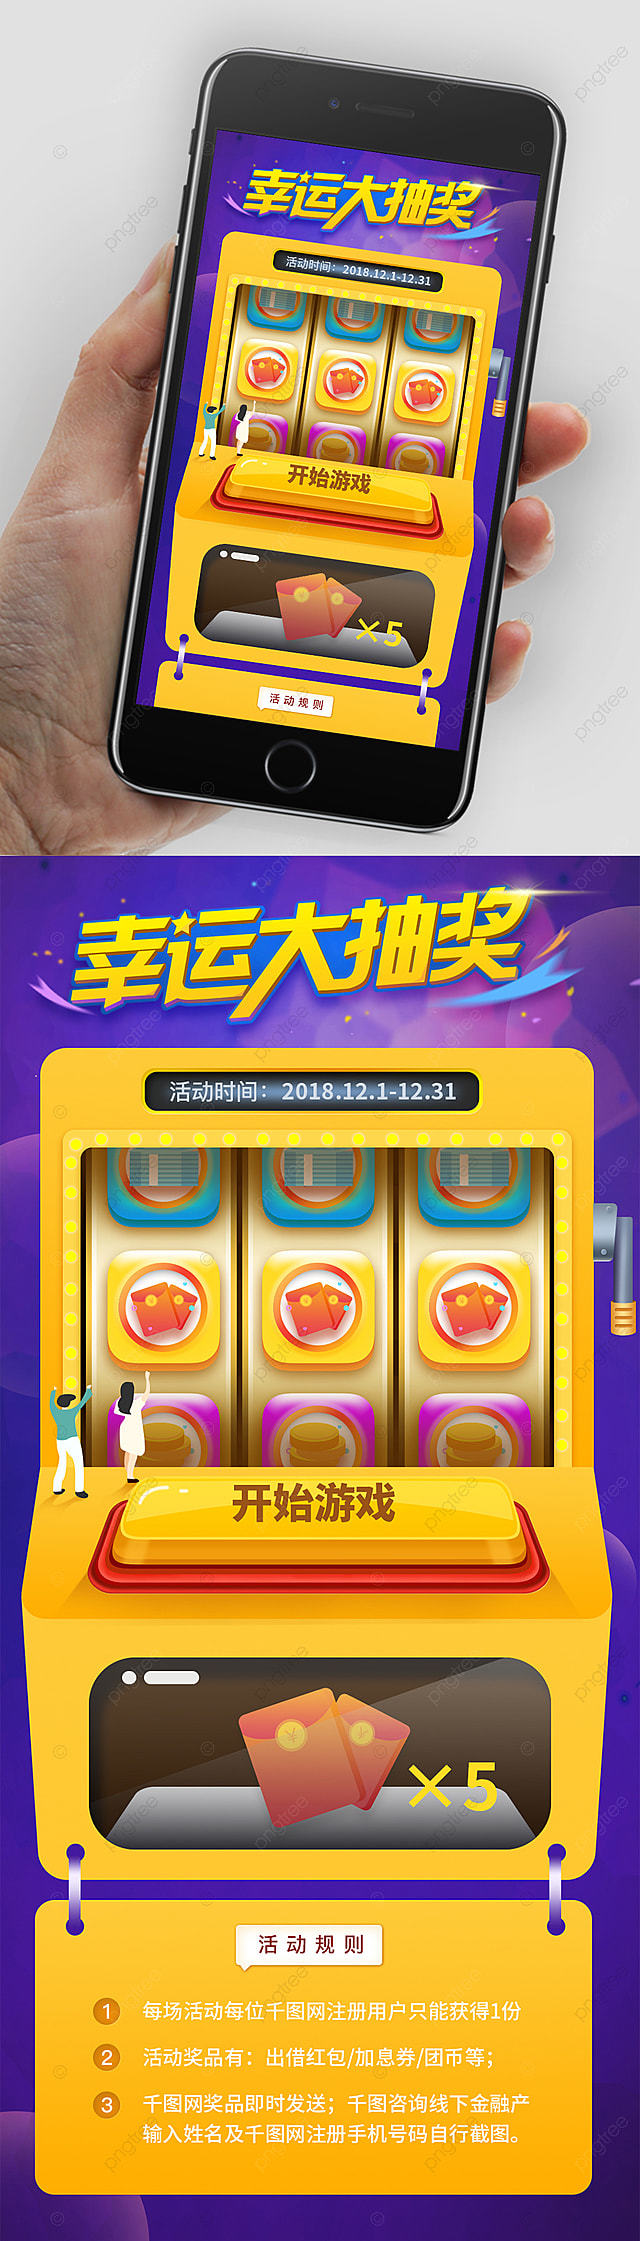 Slot Machine Ui Interface Design Game Console Template for